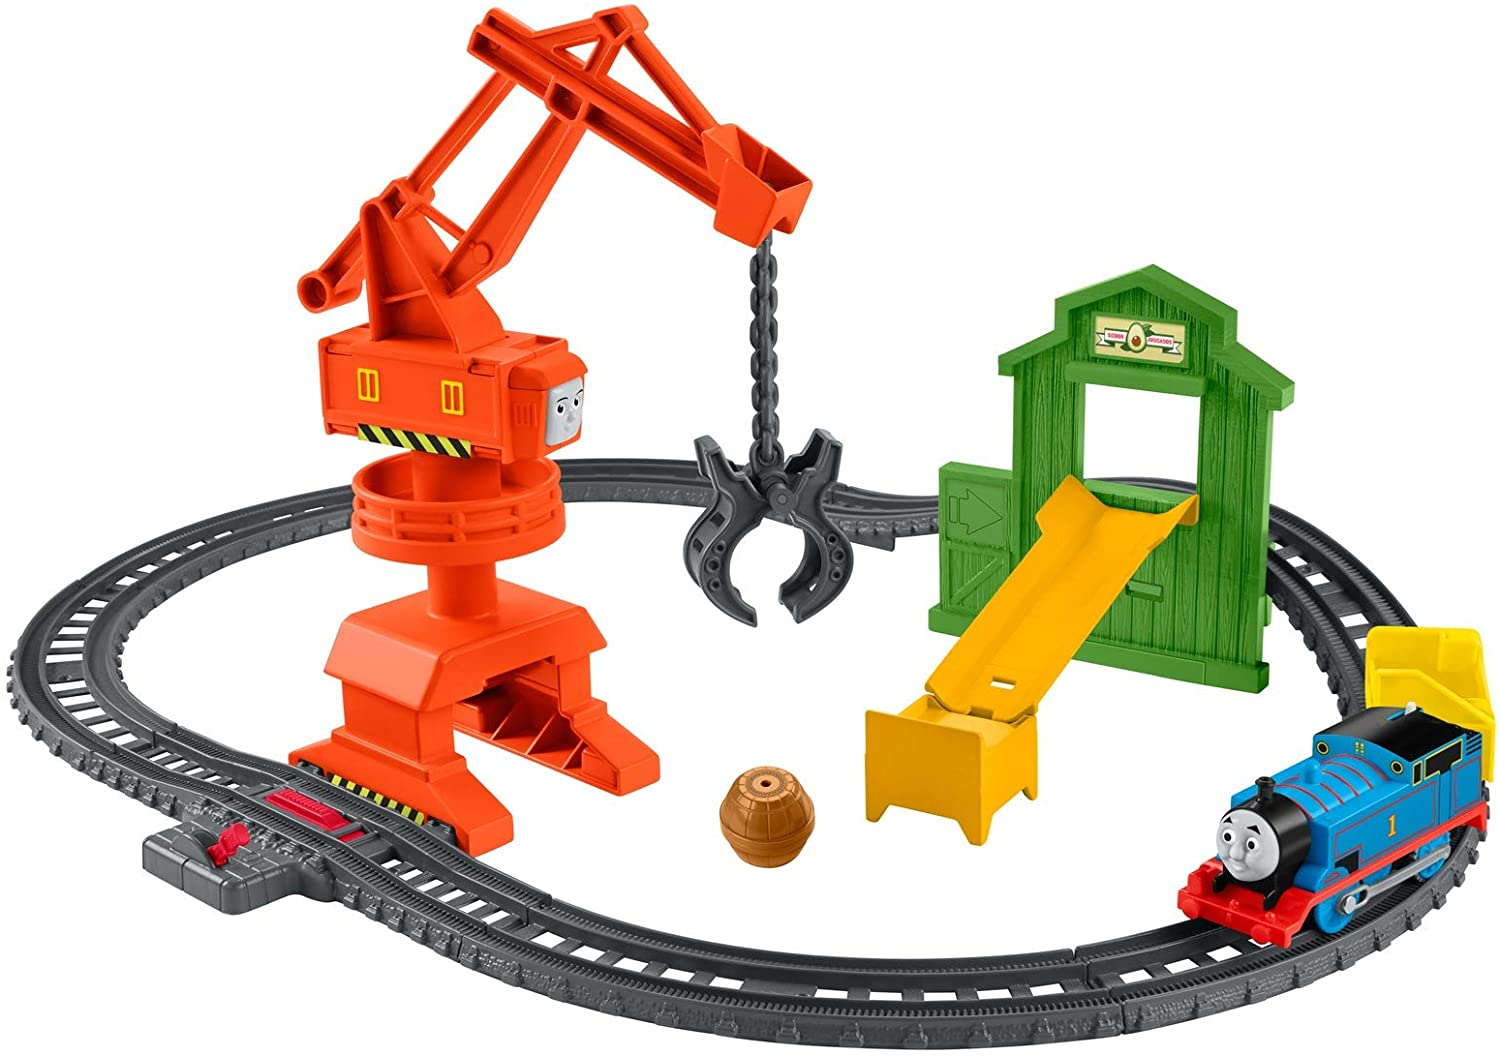 Thomas & Friends GHK83 Cassia Crane & Cargo Set